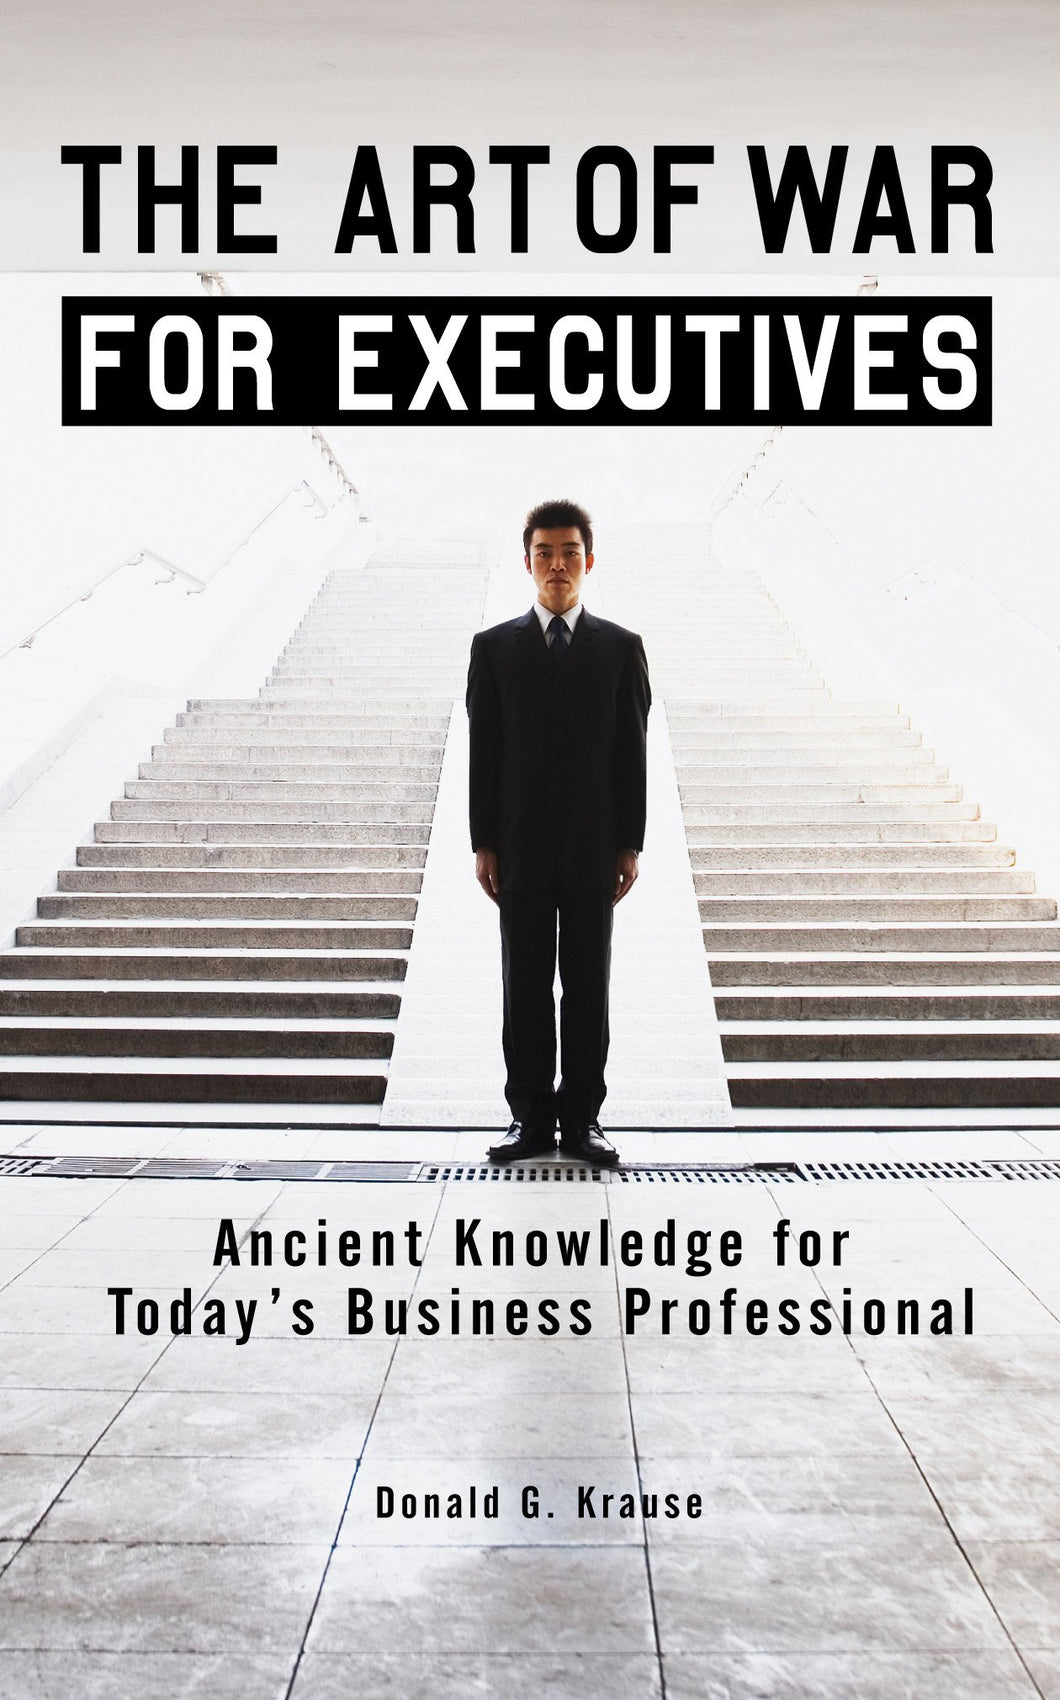 The Art of War for Executives: Ancient Knowledge for Today's Business Professional by Donald G. Krause